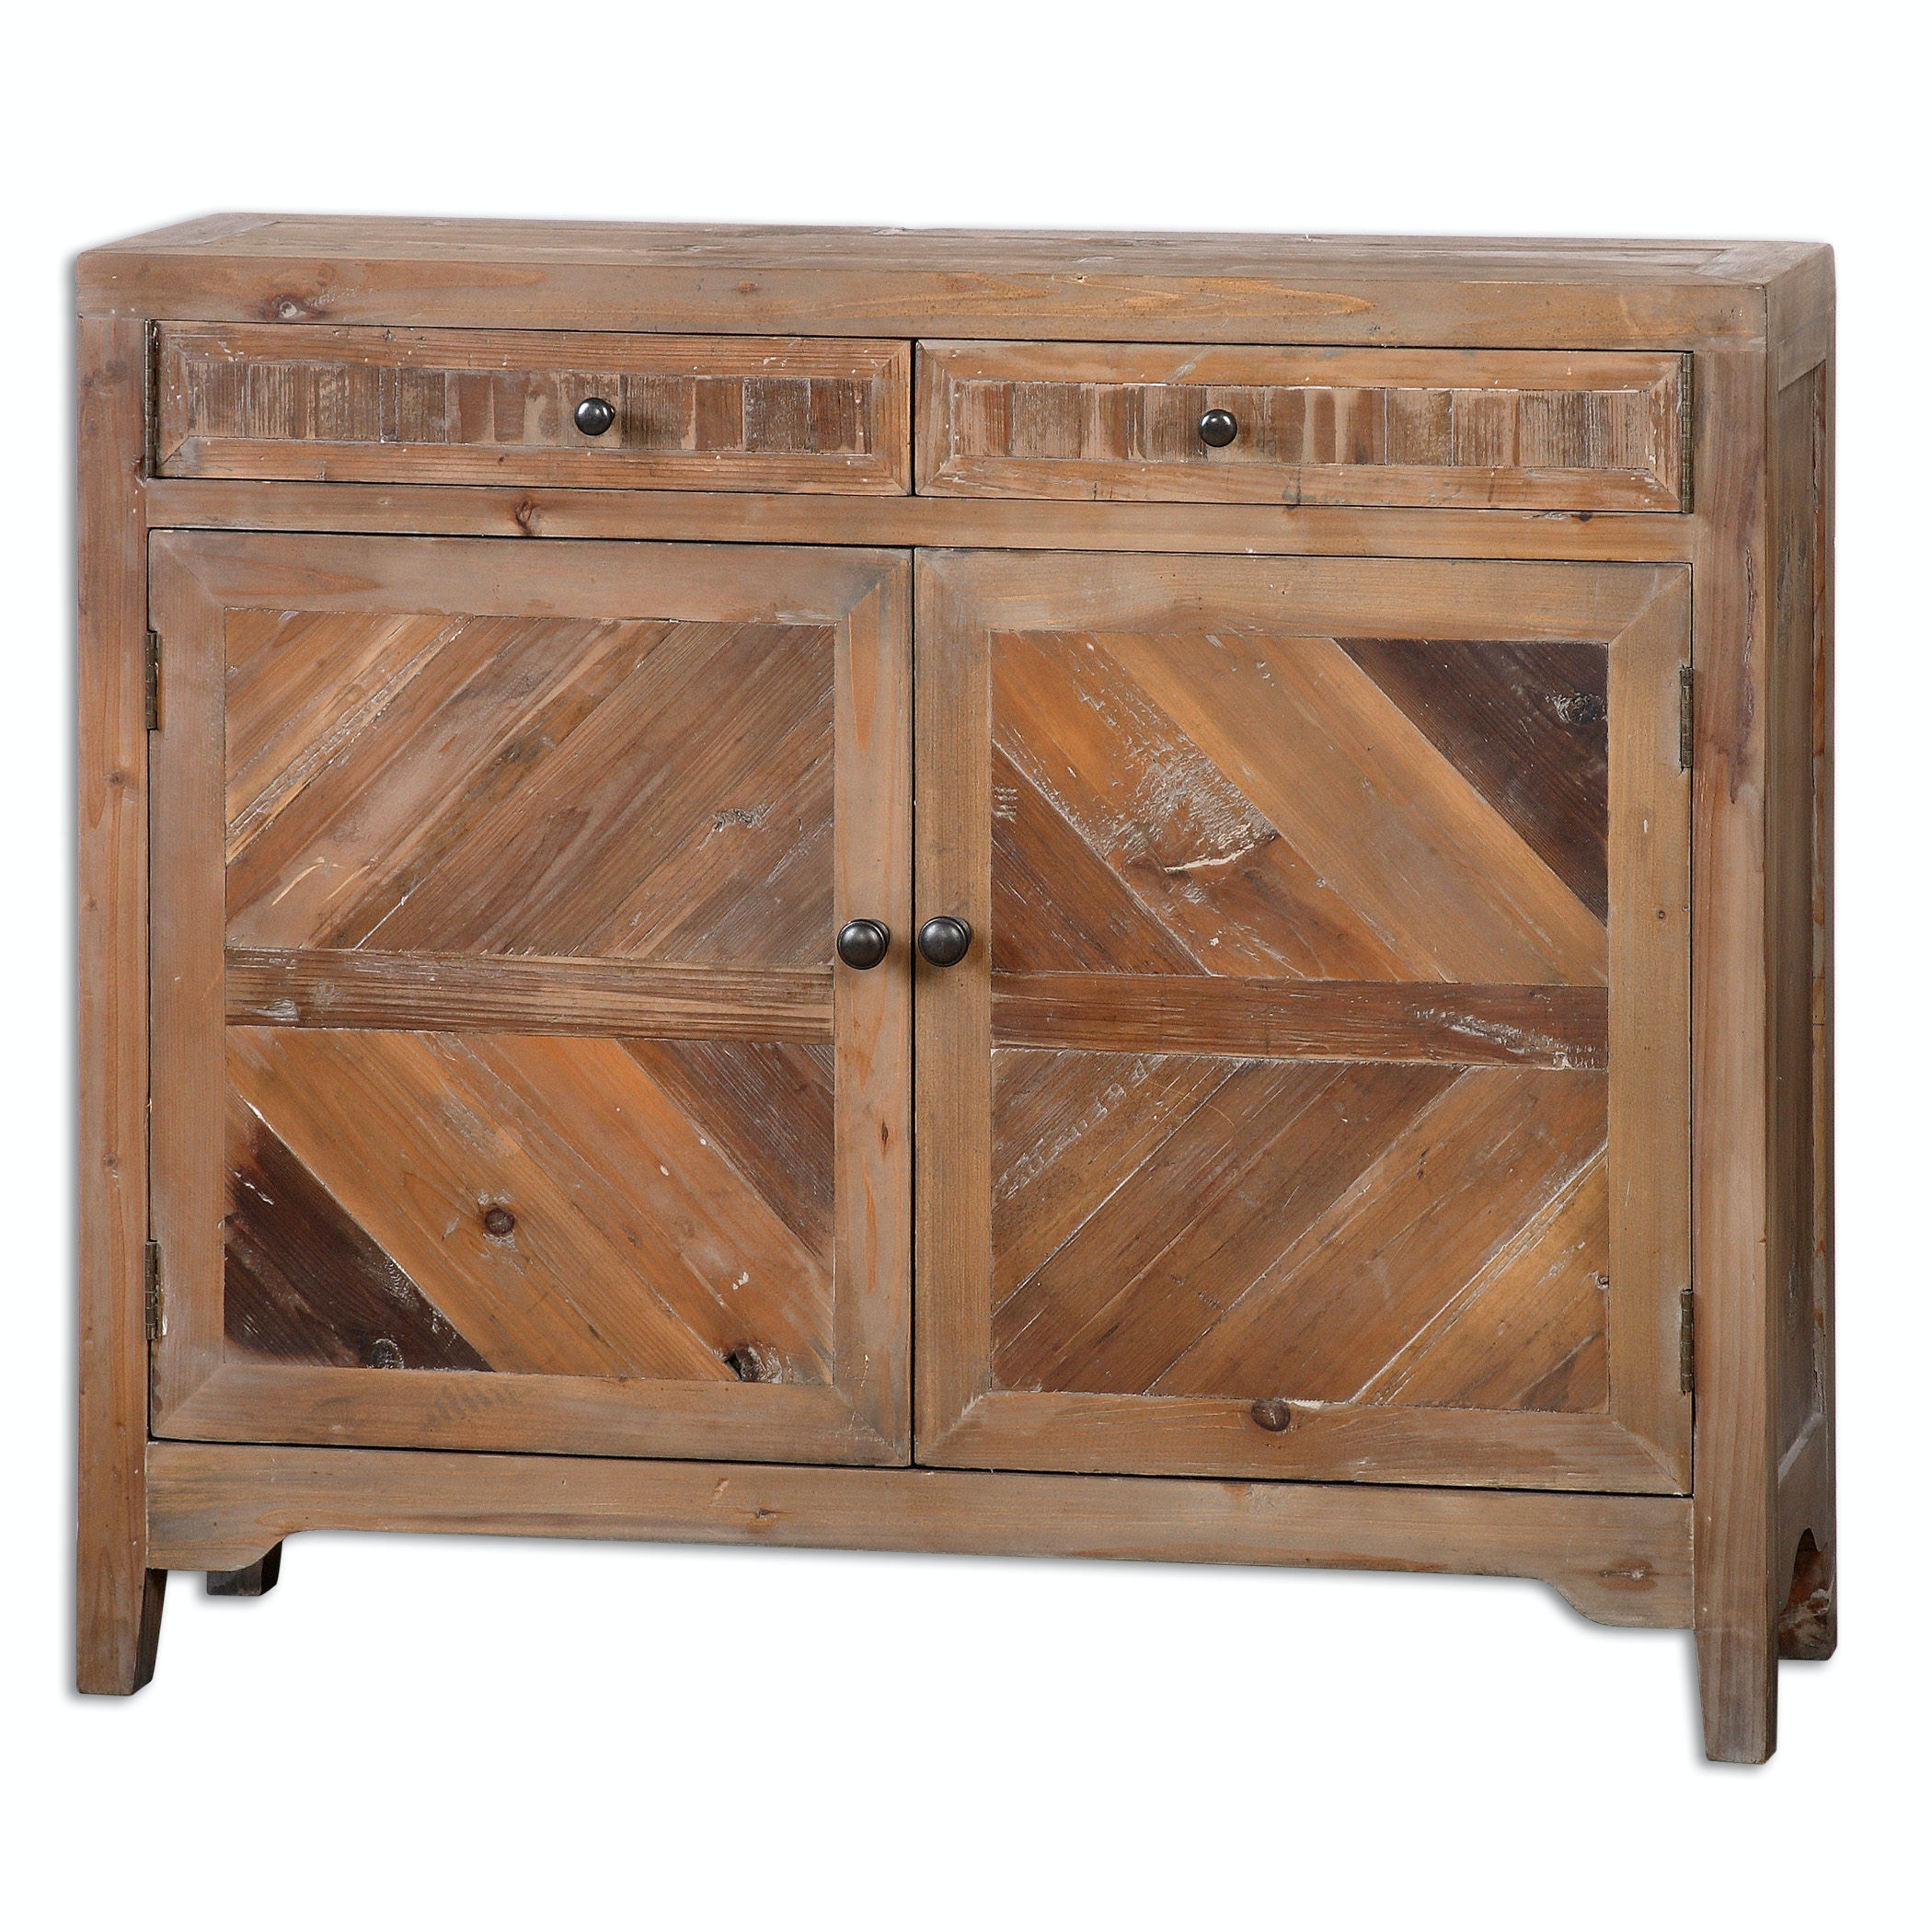 Candide Dark Gray Wood Credenza : Light gray wash wood like bathroom floor tiles design ideas